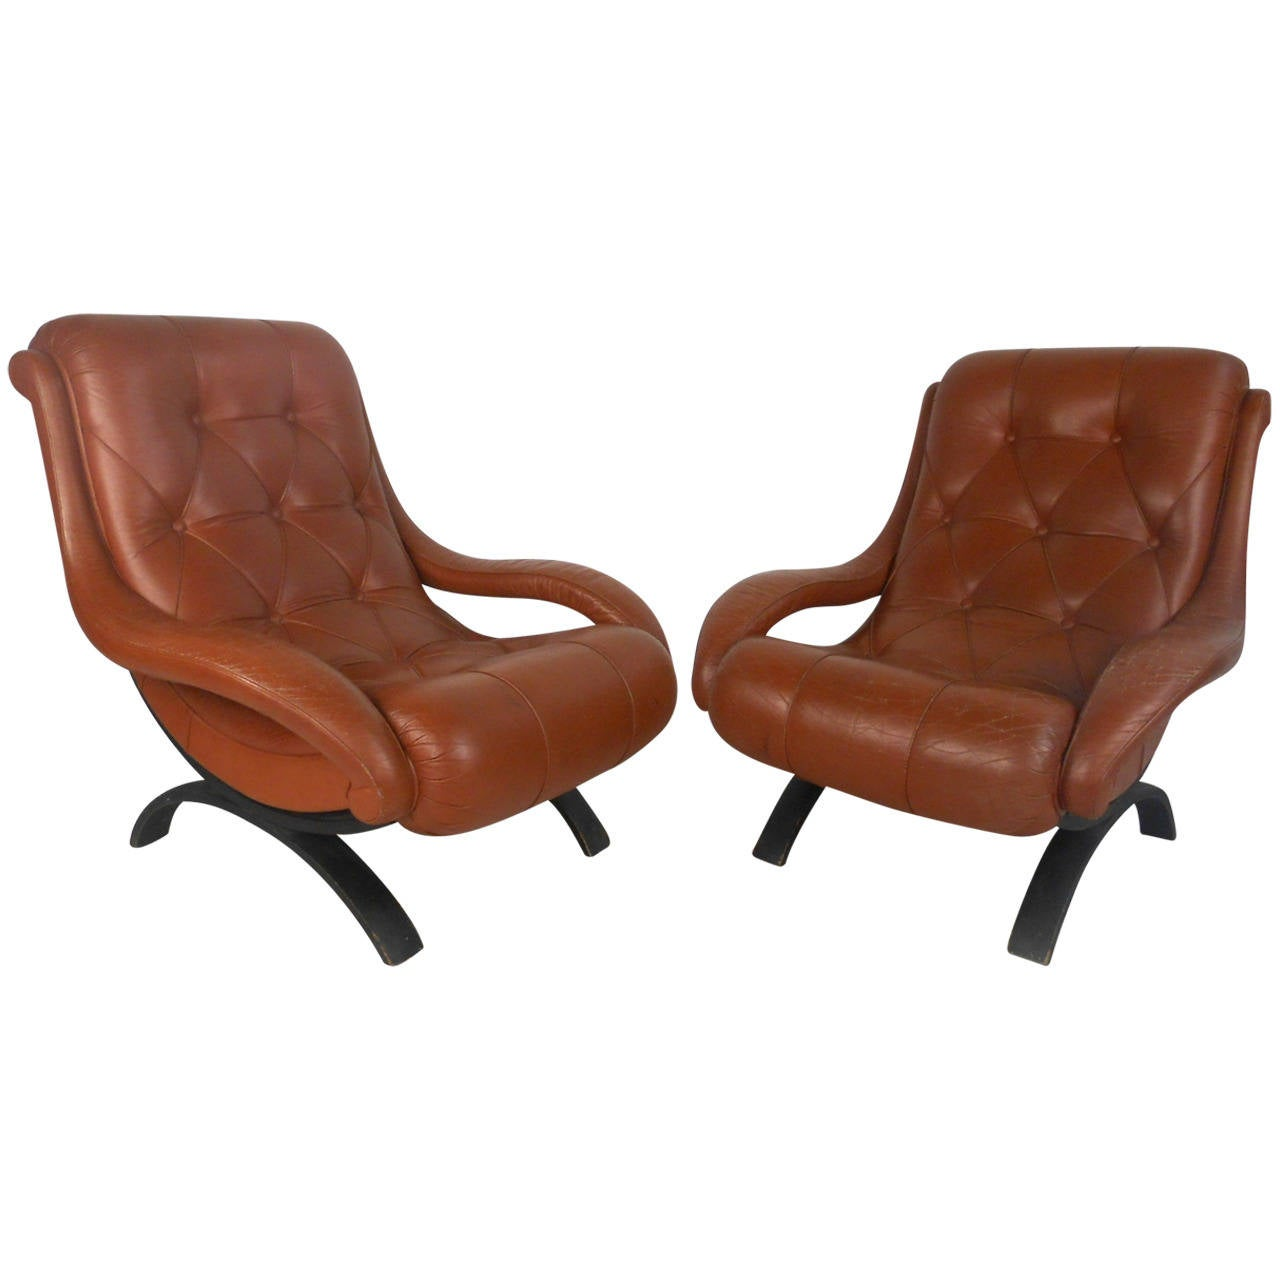 unique chairs office chair mat for wood floors pair of mid century tufted leather lounge